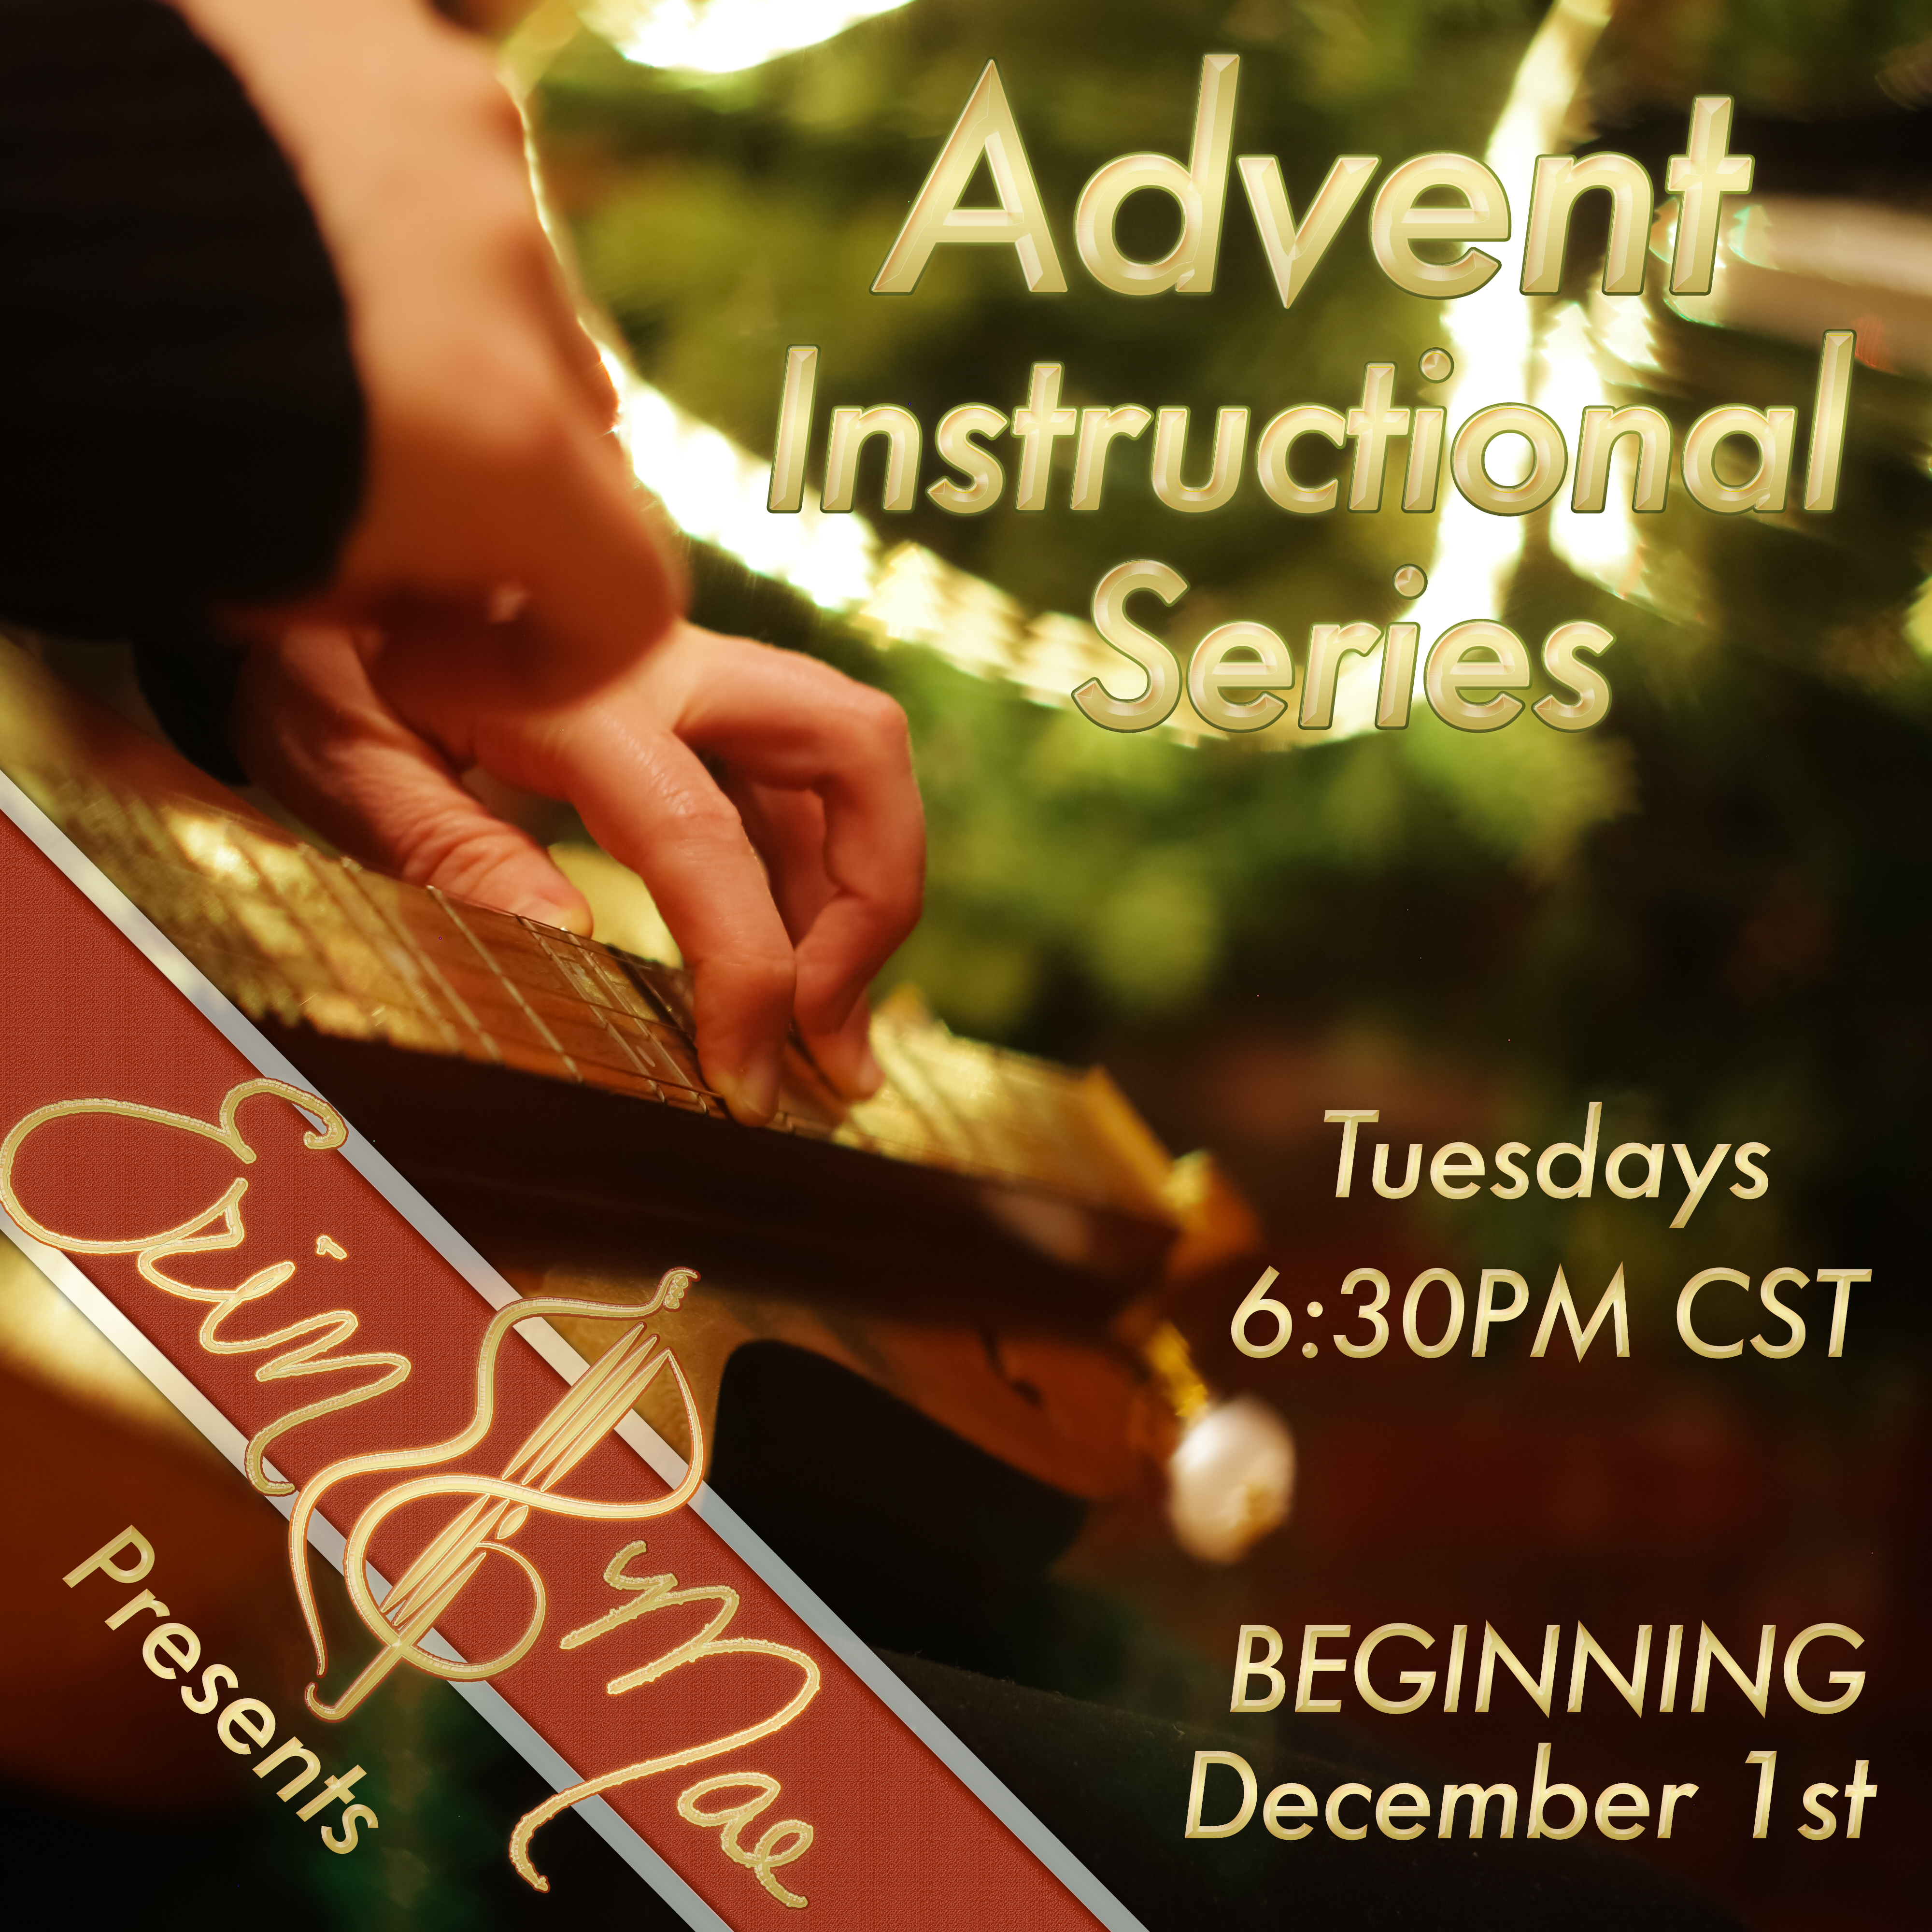 Advent Instructional Series - Tuesday